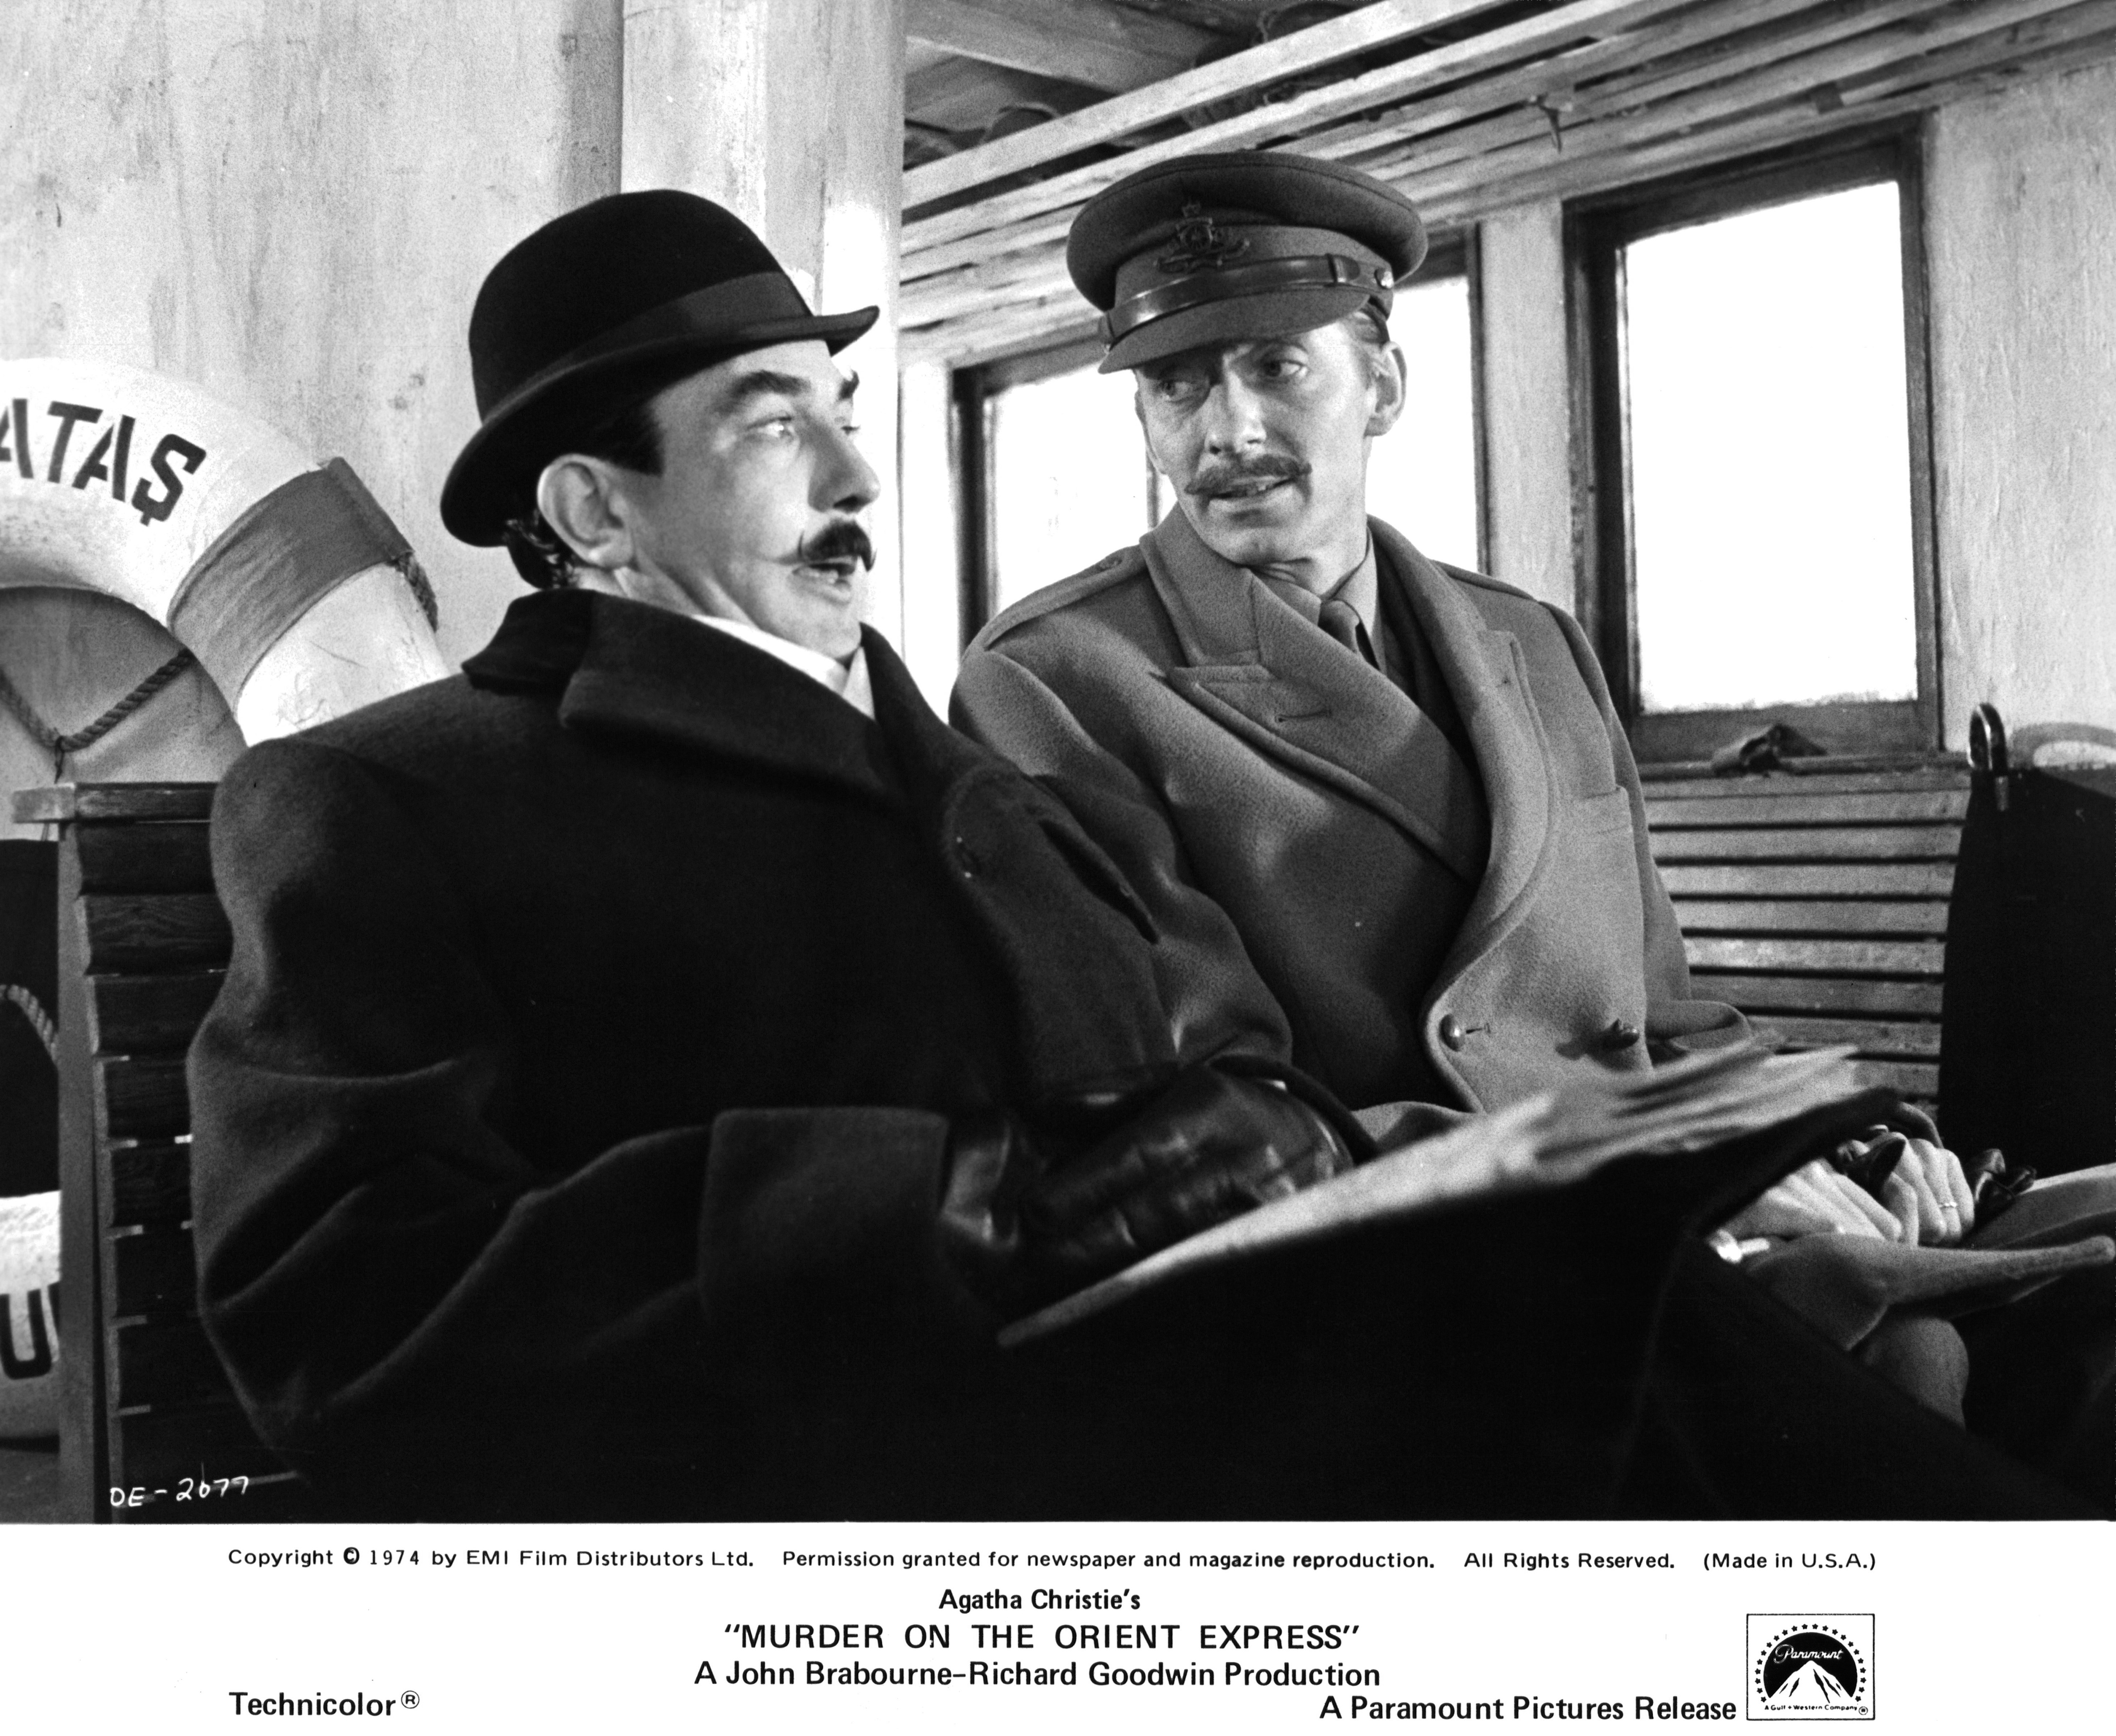 Albert Finney and Jeremy Lloyd in Murder on the Orient Express (1974)